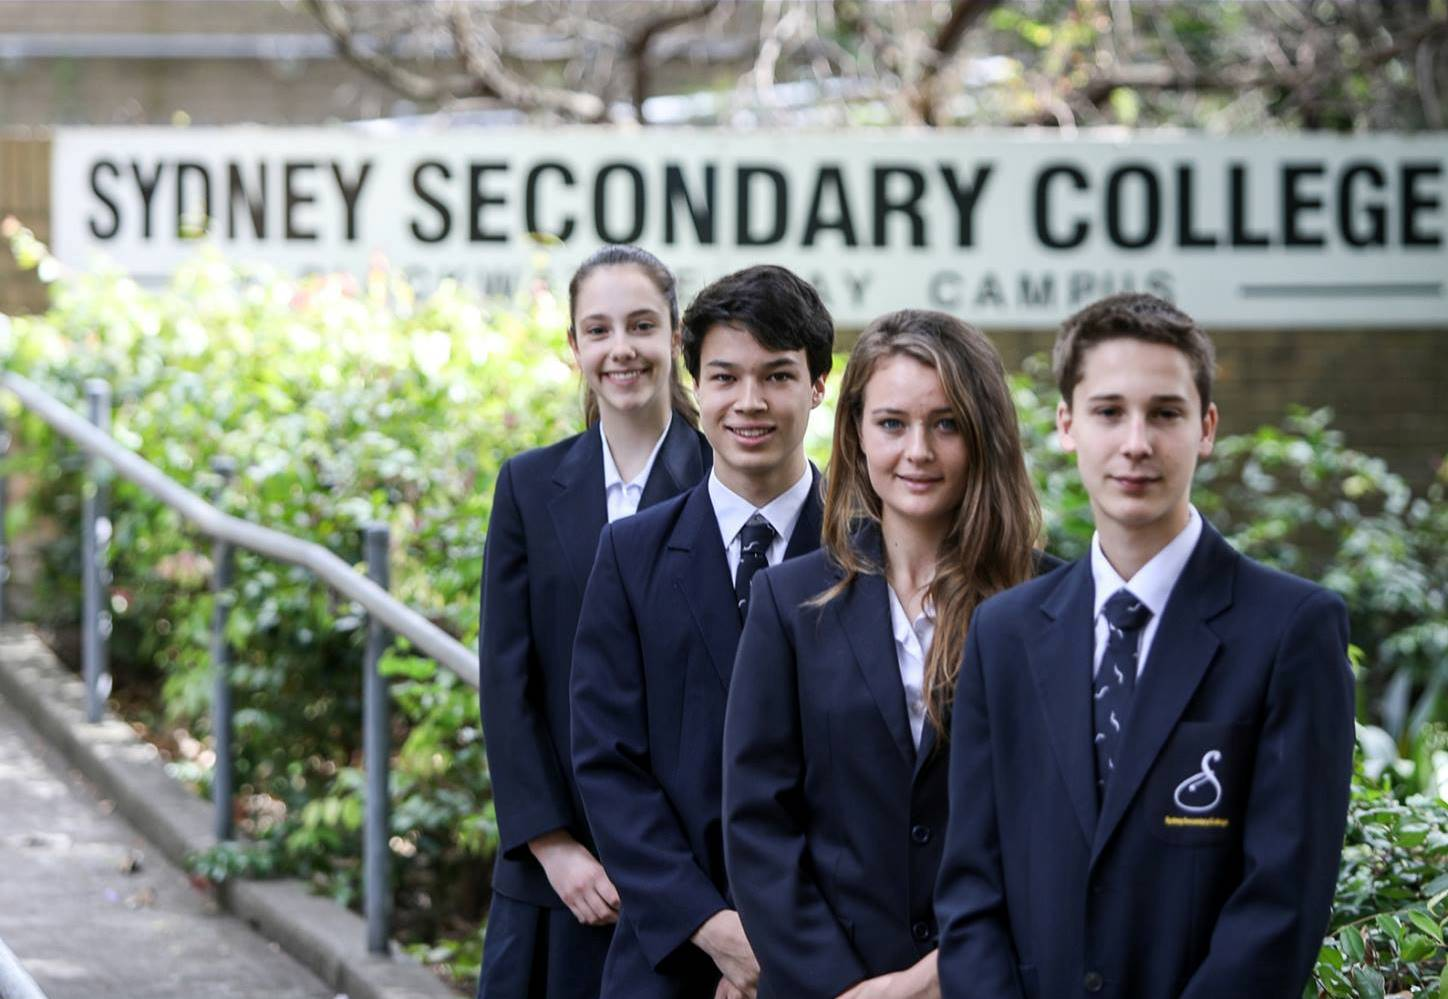 Expand Sydney Secondary College's Leichhardt campus